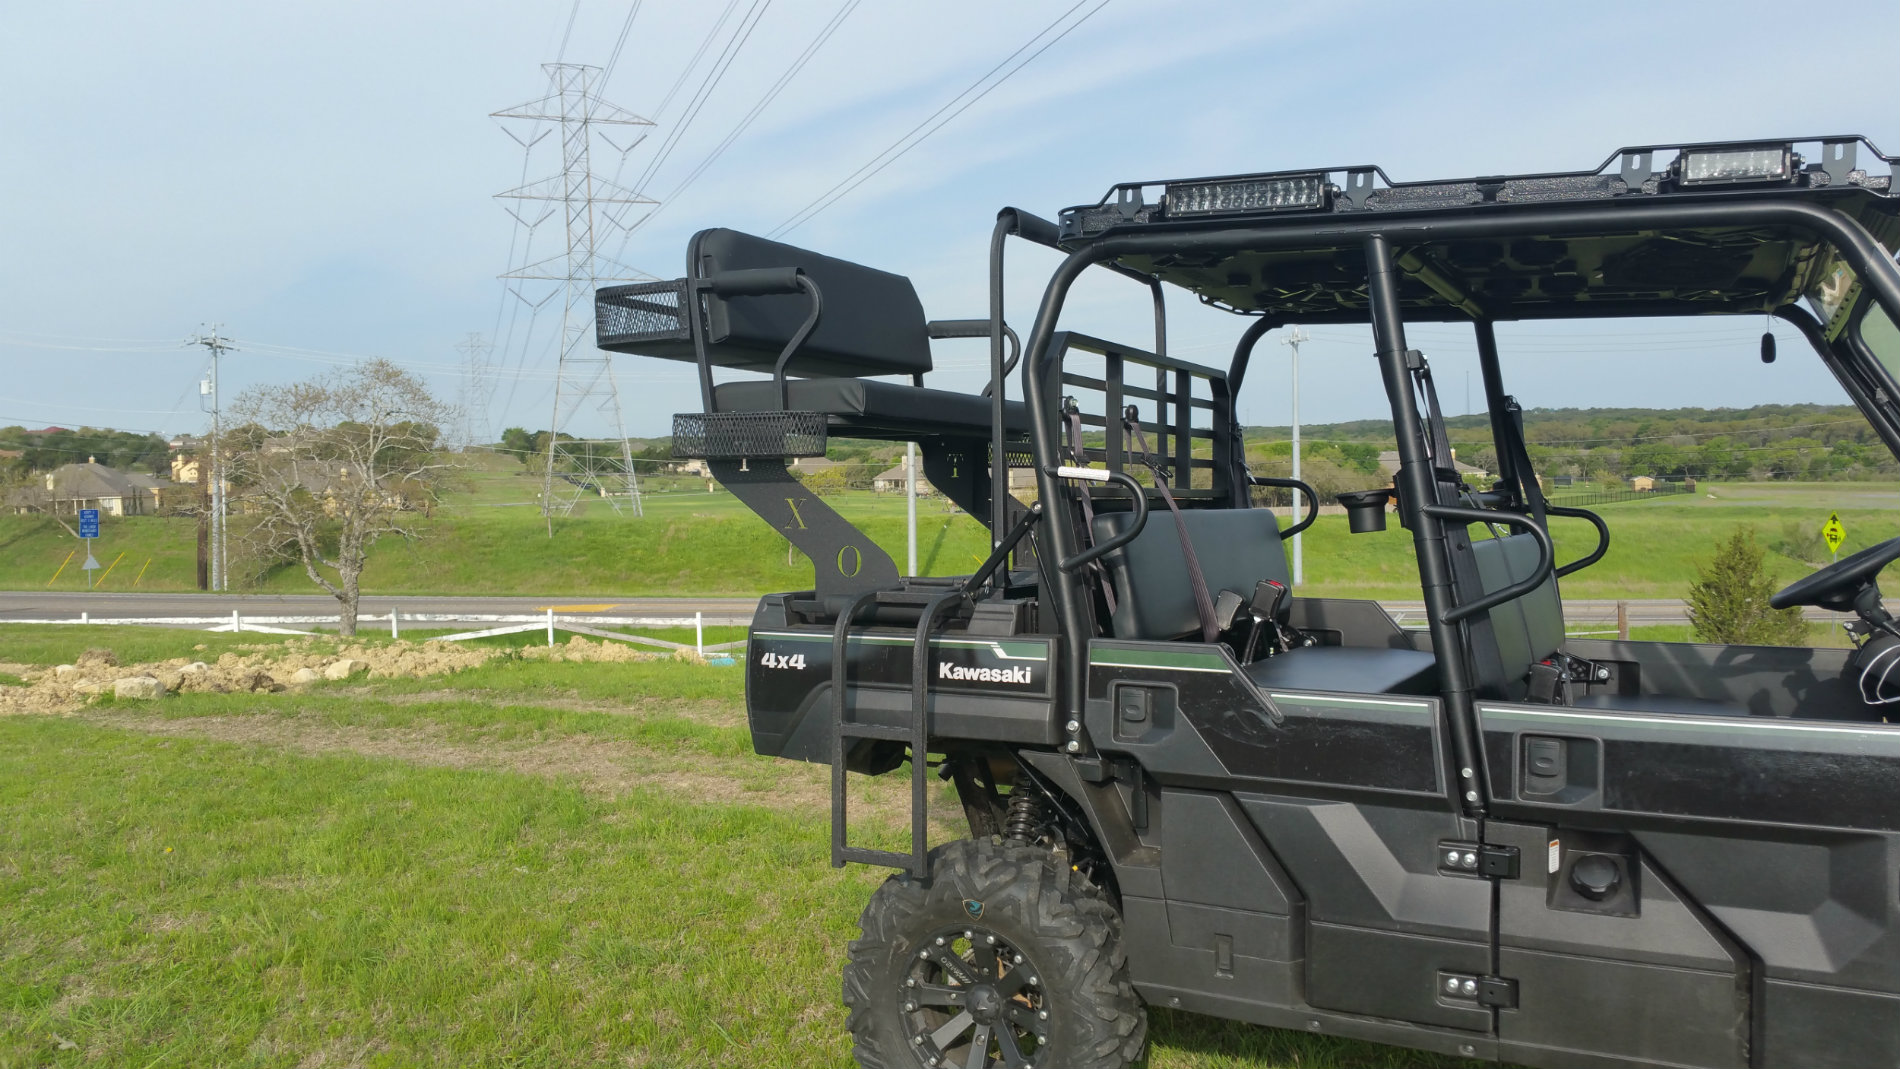 kawasaki-mule-pro-rear-high-rack-and-basket.jpg